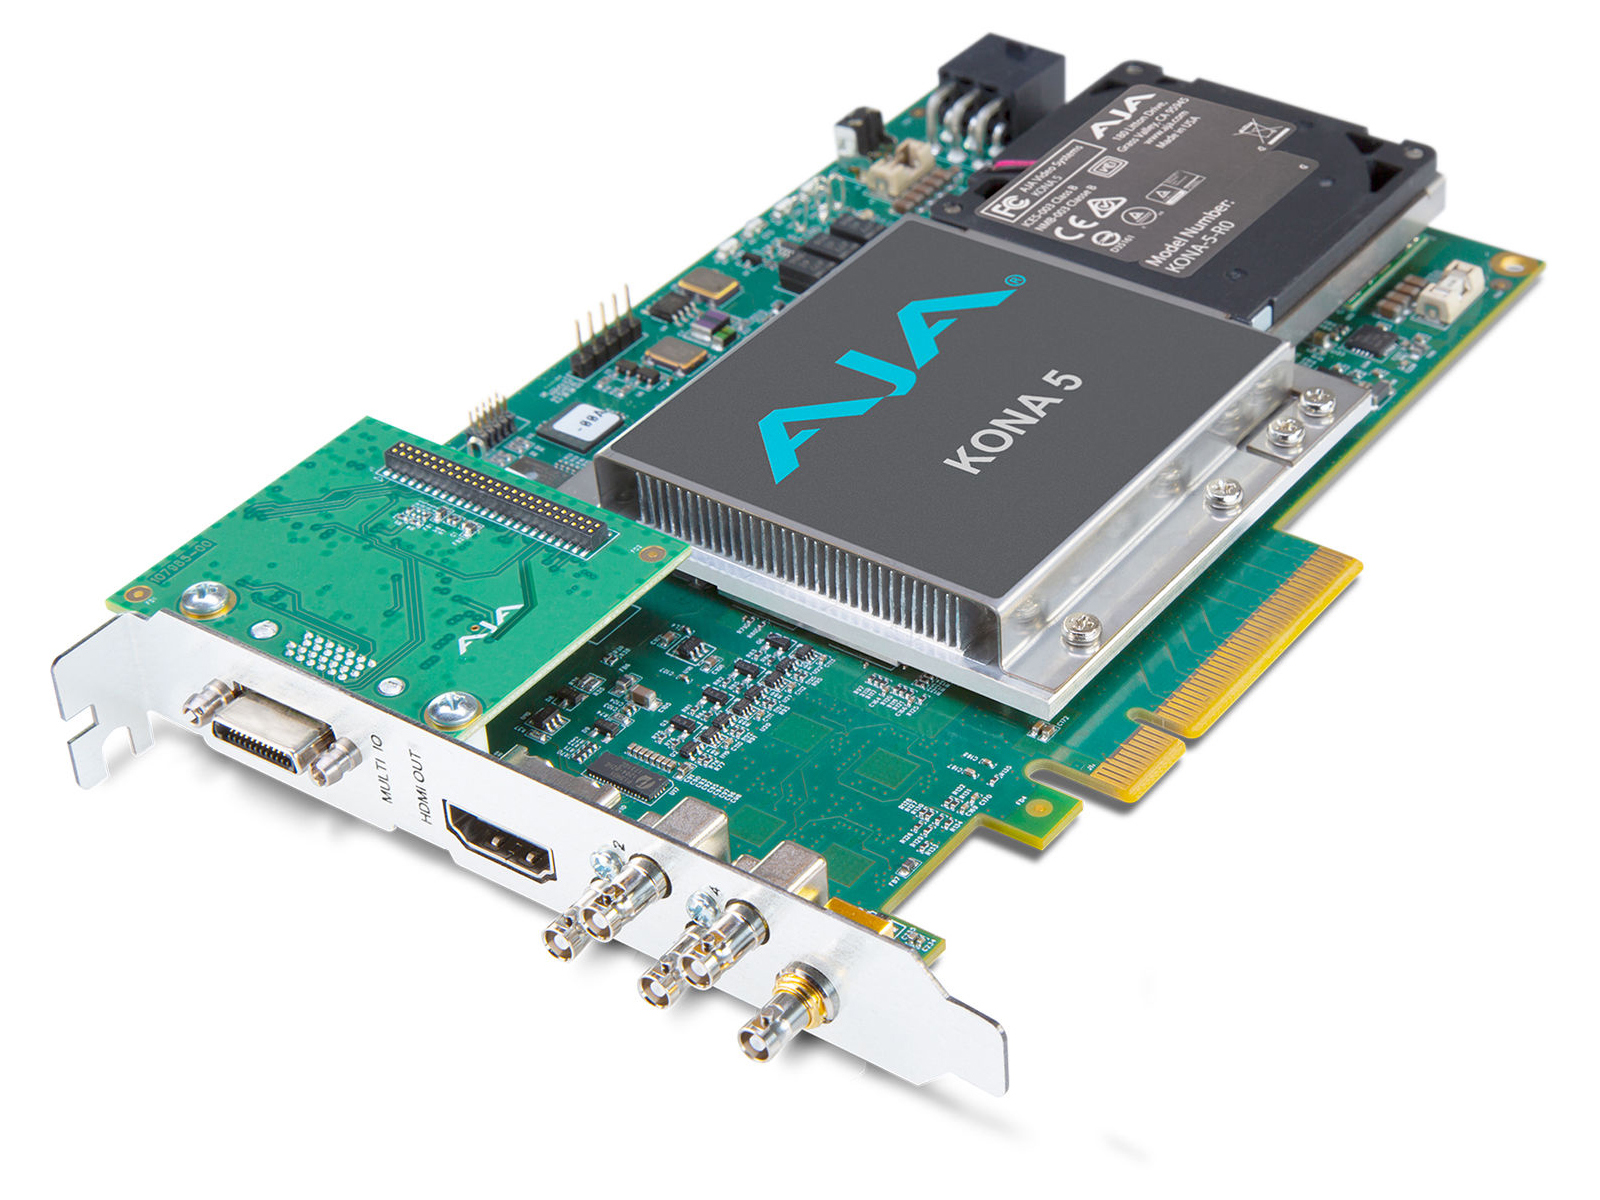 KONA-5-R0-S00 12G-SDI I/O 10-bit PCIe Card HDMI 2.0 output with HFR support (ATX power with no cable) by AJA